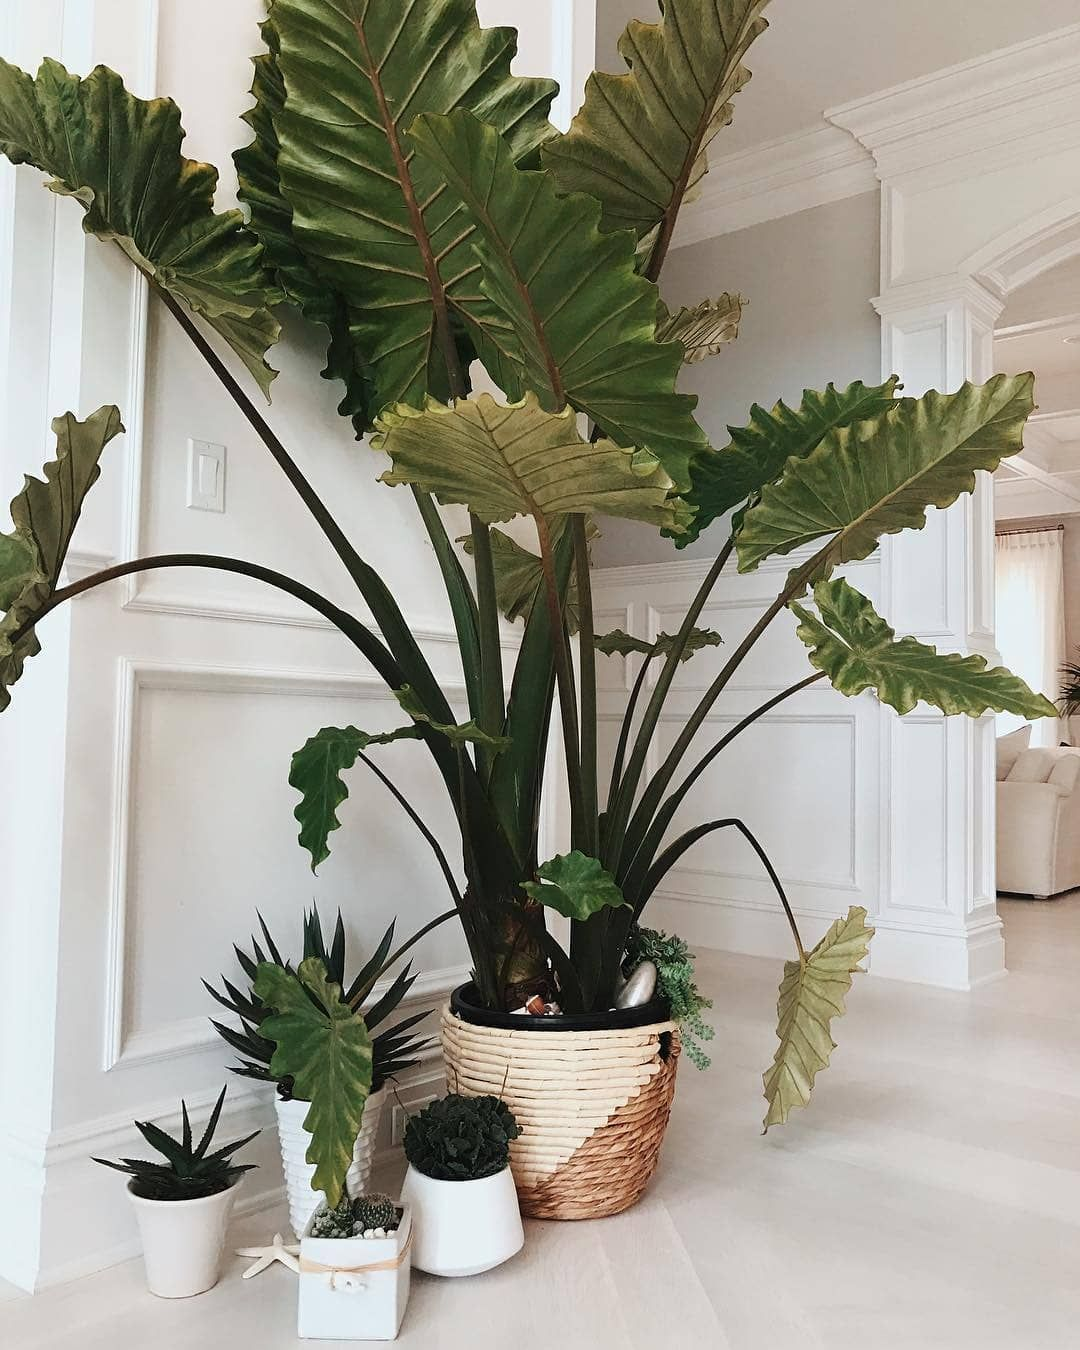 "Thejoyofplants on Instagram: ""Bring the jungle indoors with a sarian elephant ear plant. ????: @rayethelabel"" #elephantearsandtropicals"